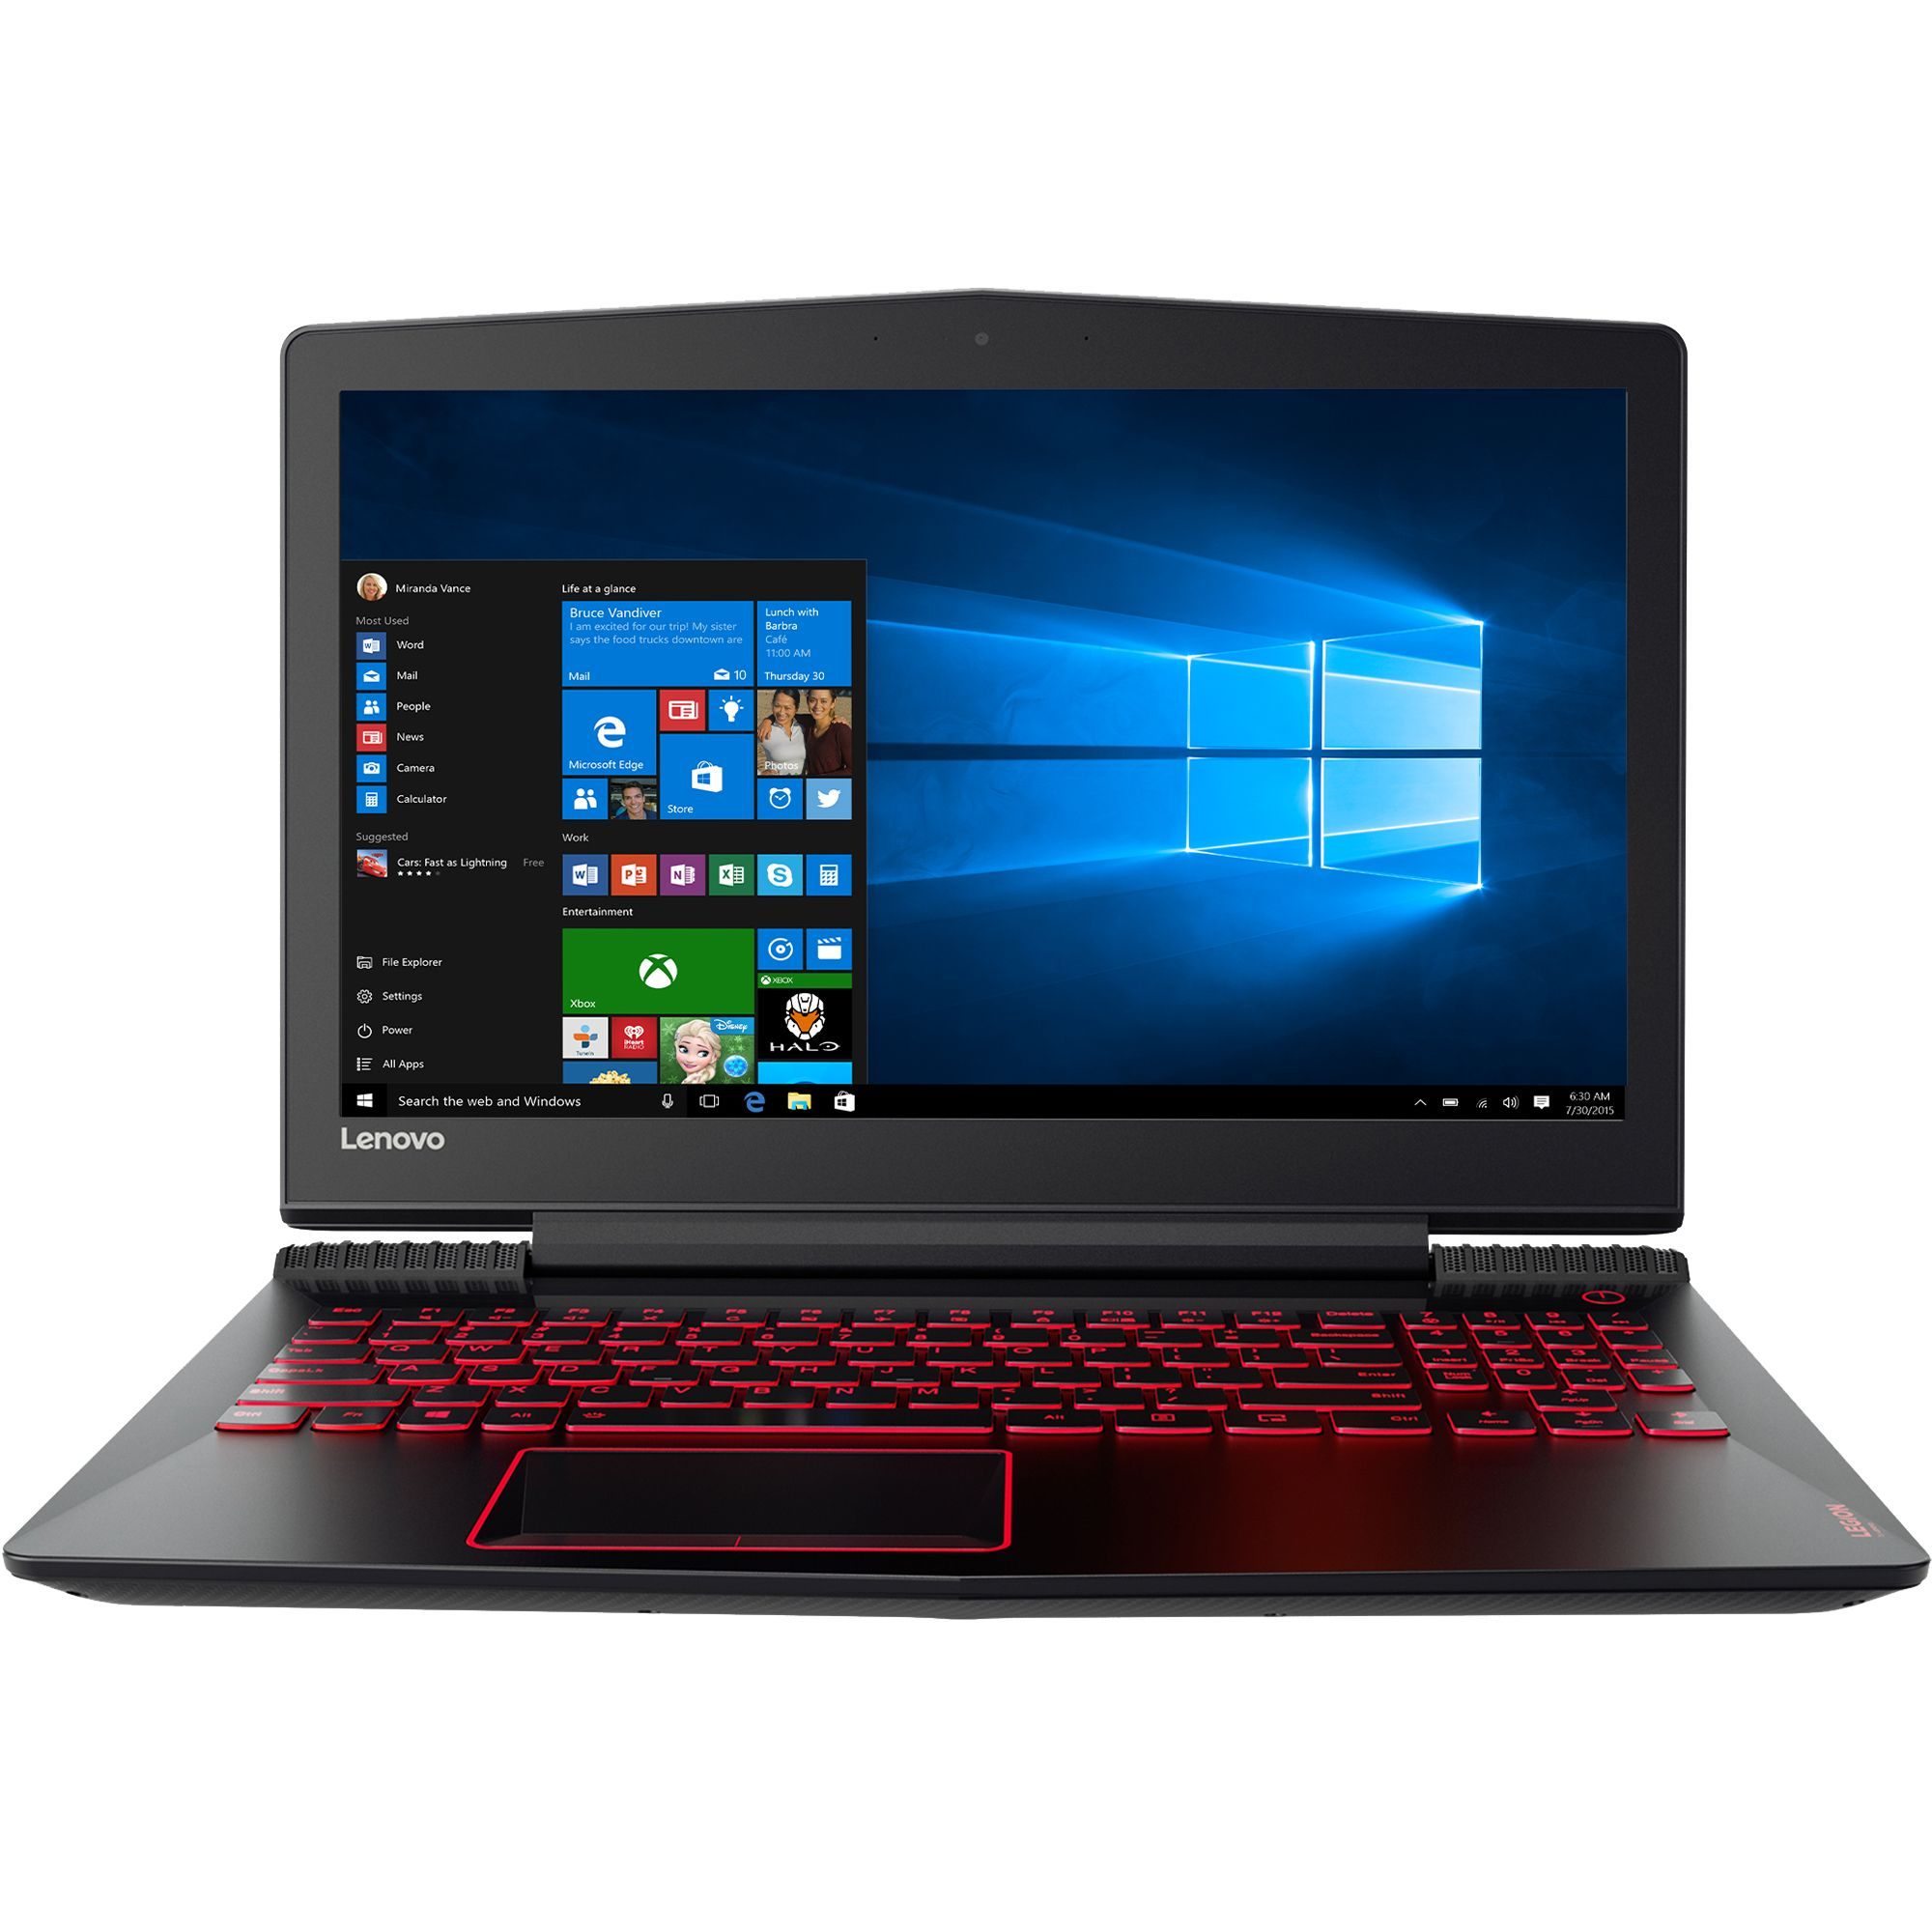 Notebook Lenovo Legion Y520 15.6 Full HD Intel Core i5-7300HQ GTX 1060-3GB RAM 8GB HDD 1TB FreeDOS